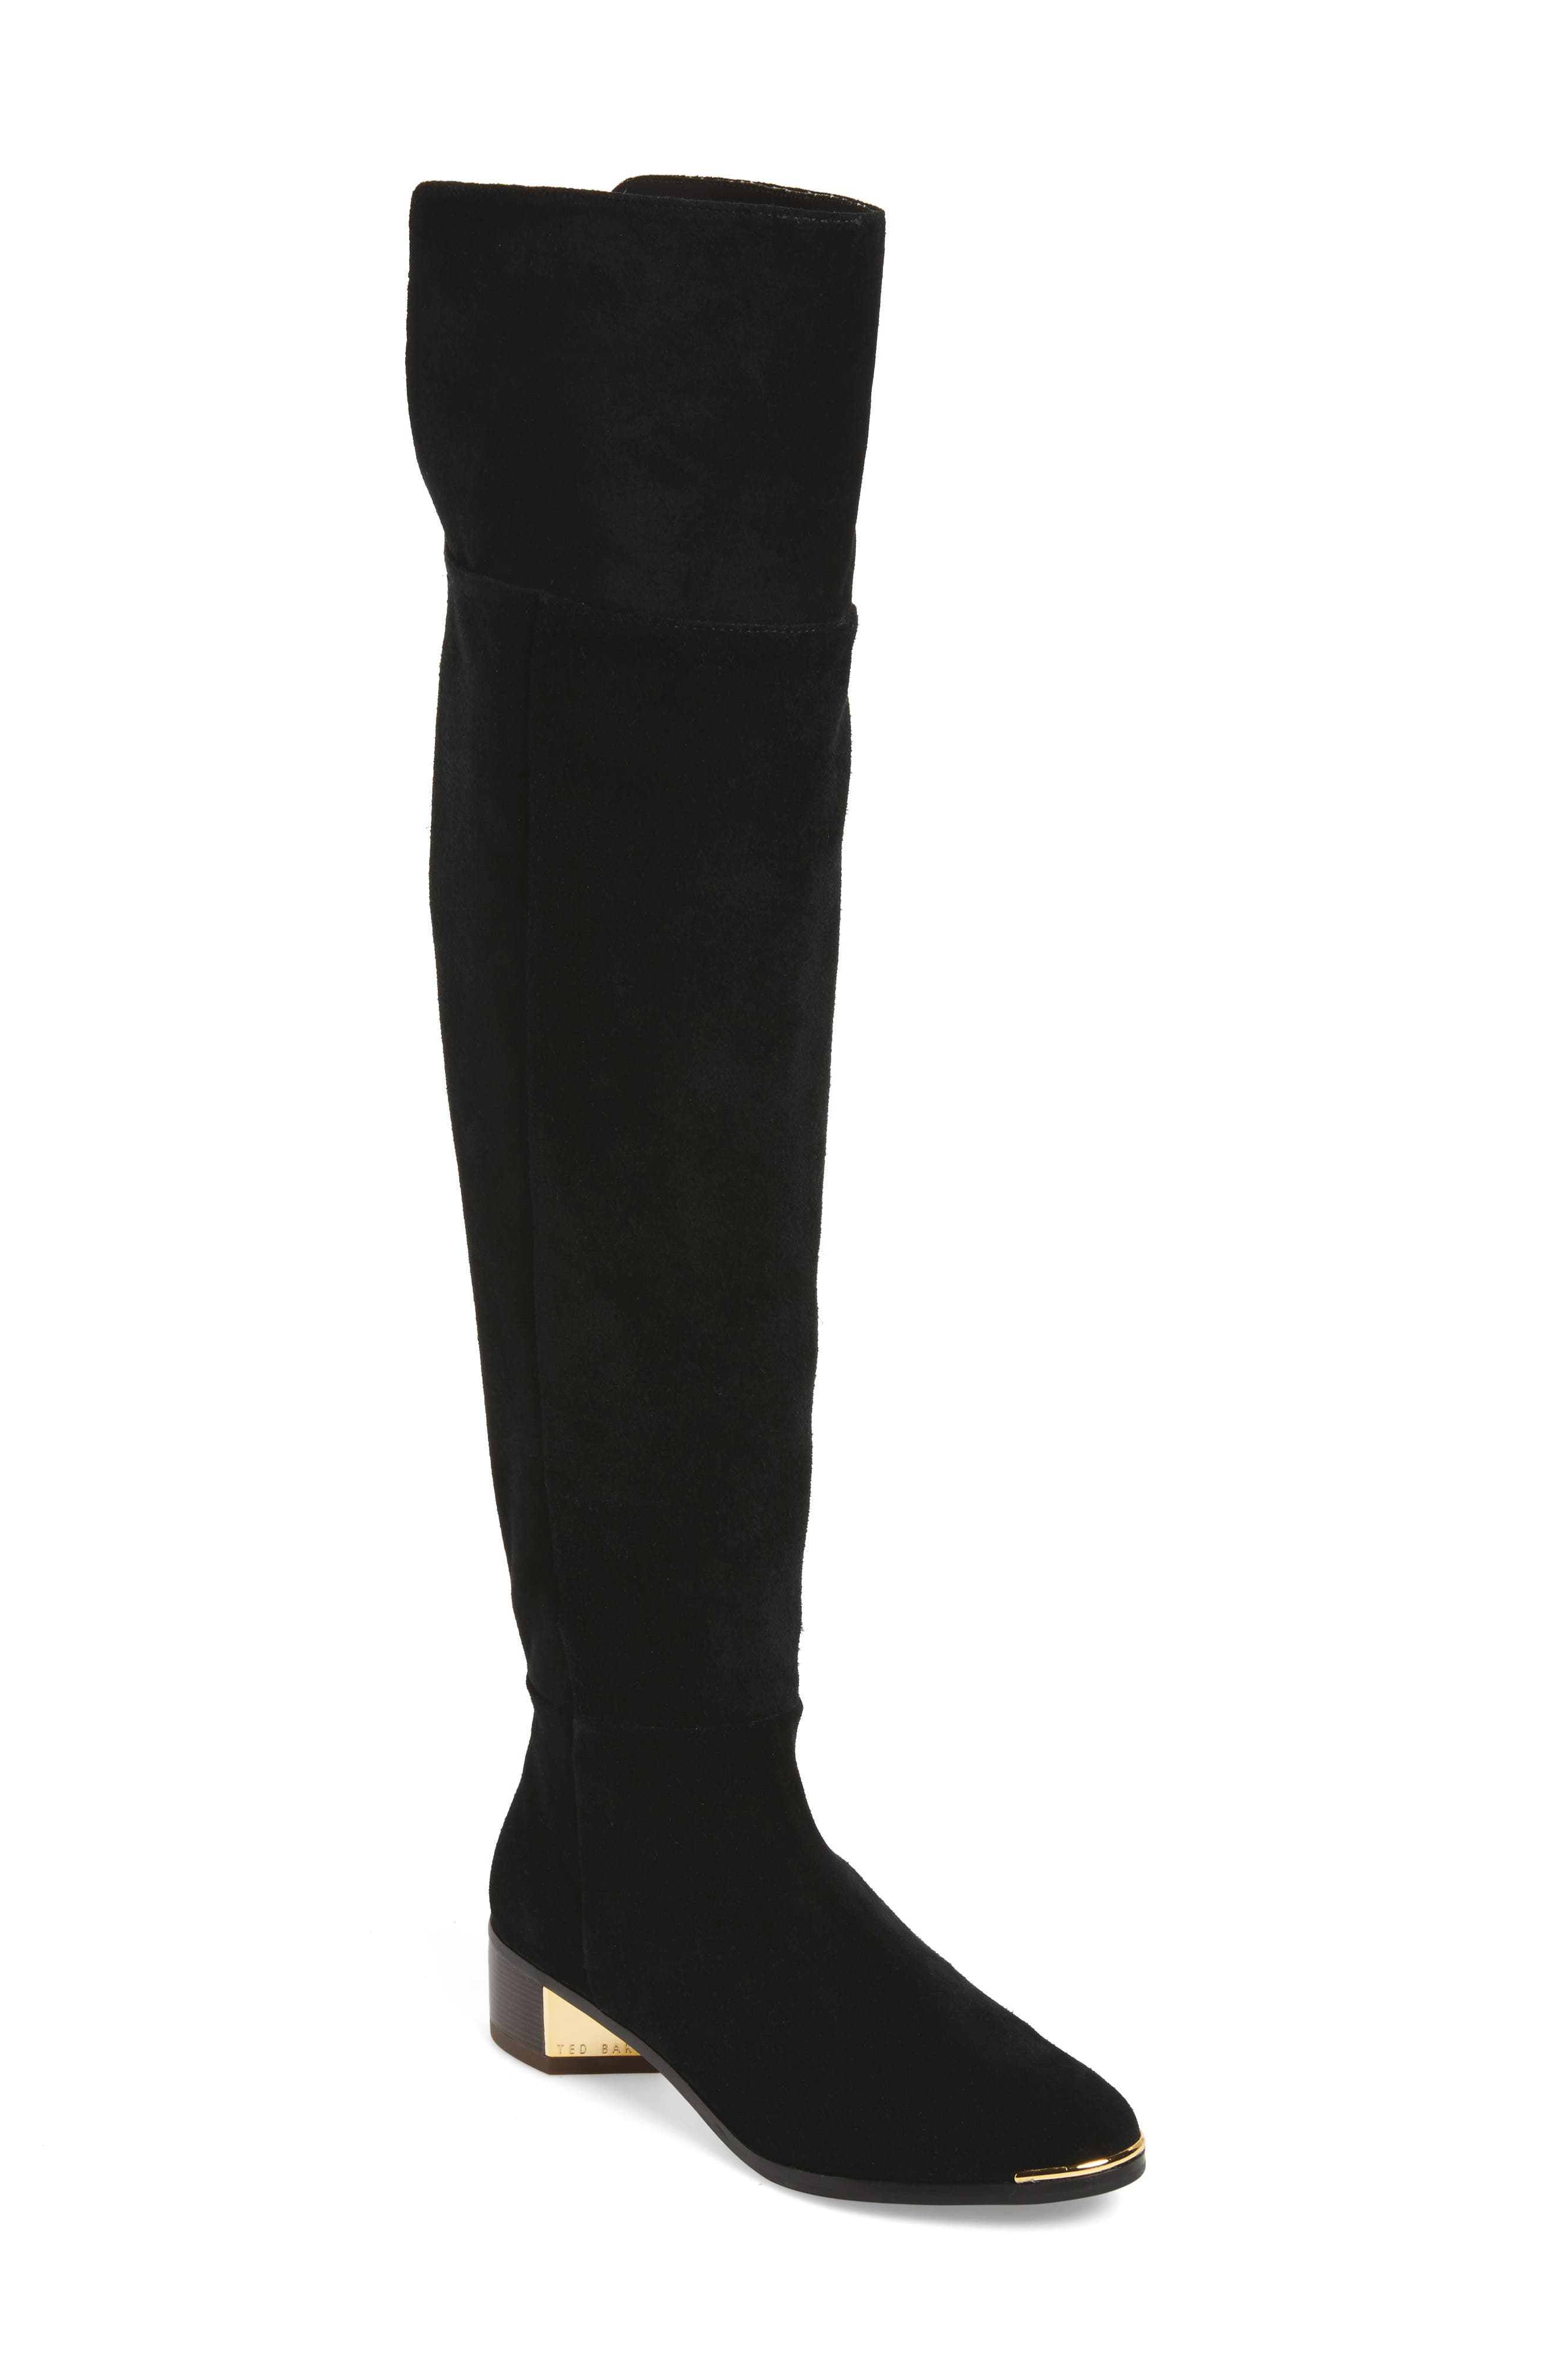 Nayomie Over the Knee Boot,                             Main thumbnail 1, color,                             001